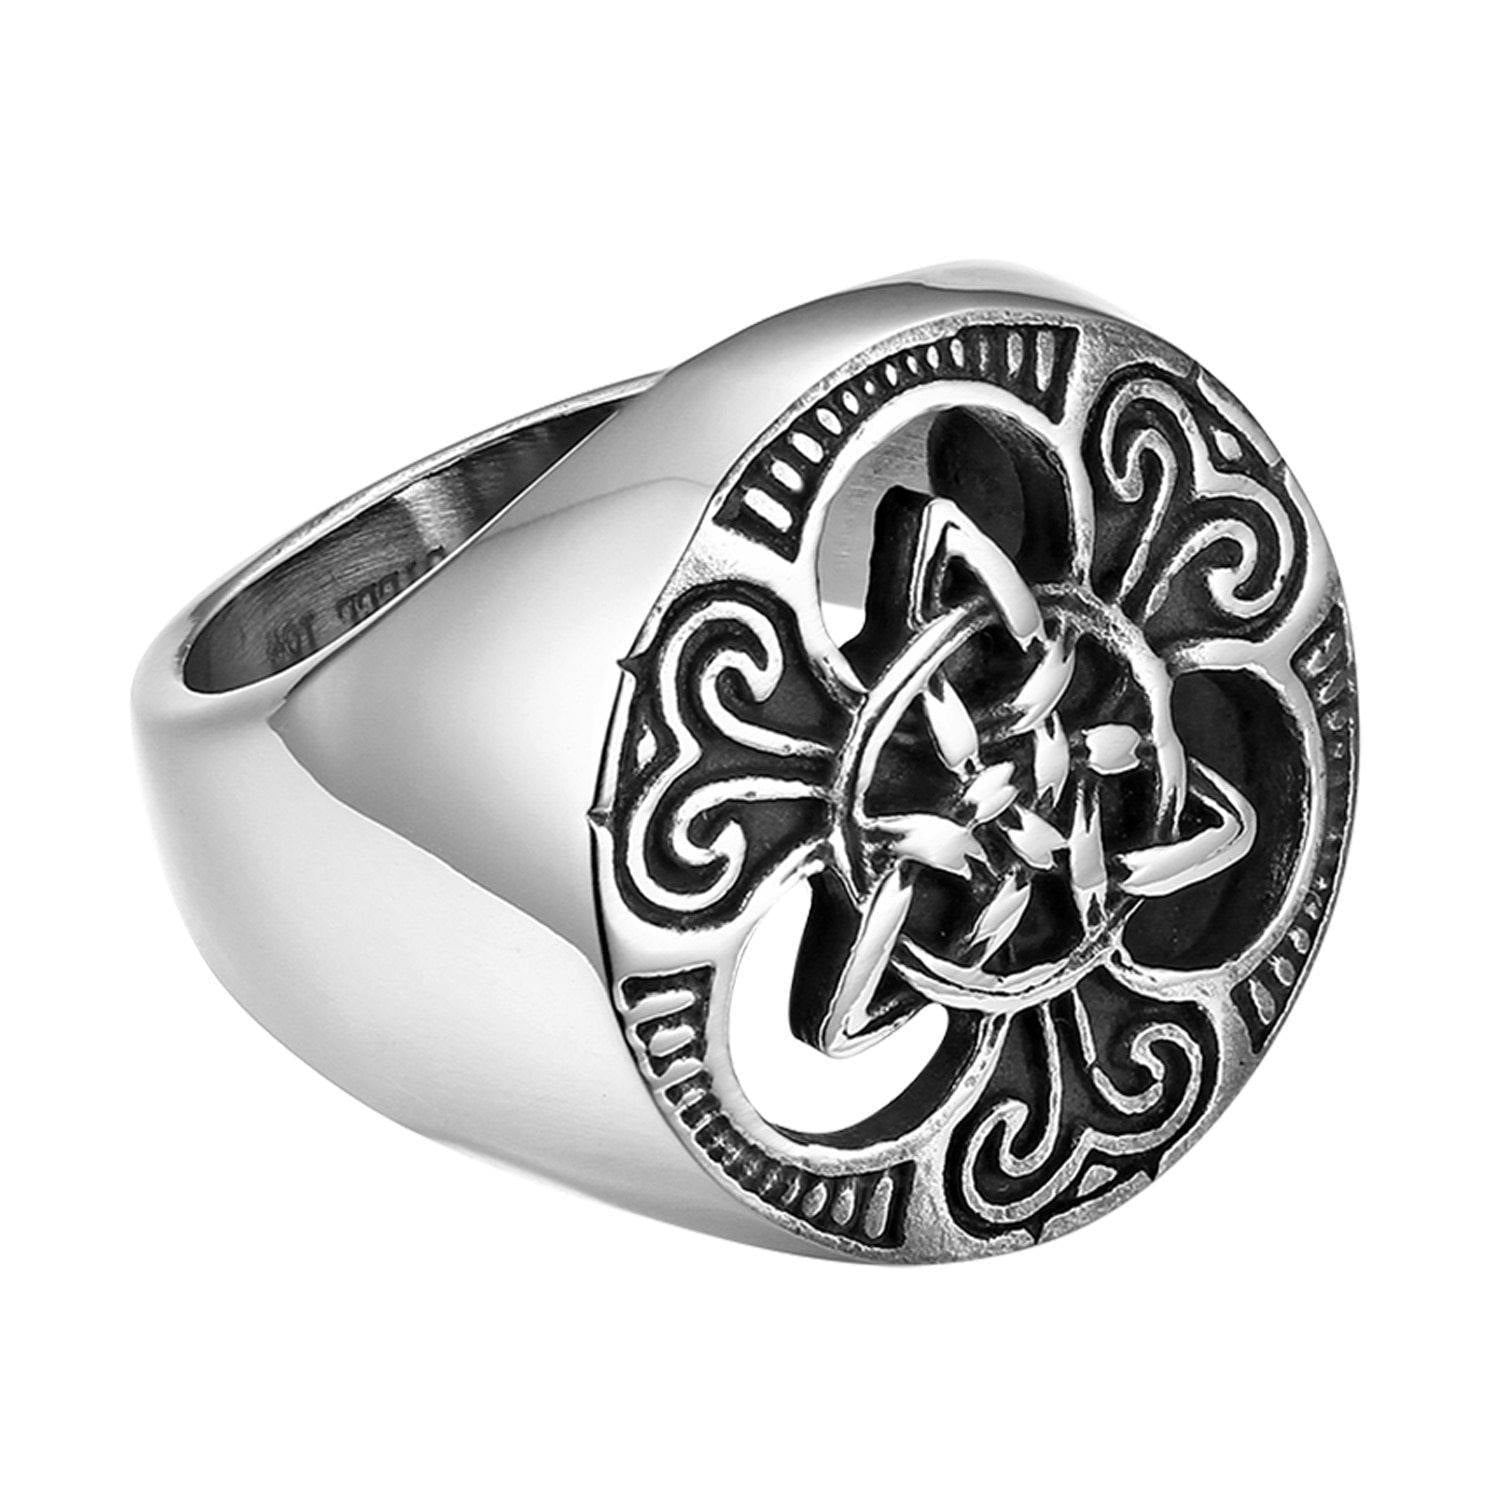 Men's Stainless Steel Celtic Knot Ring Large Sizes - Rebel Stones